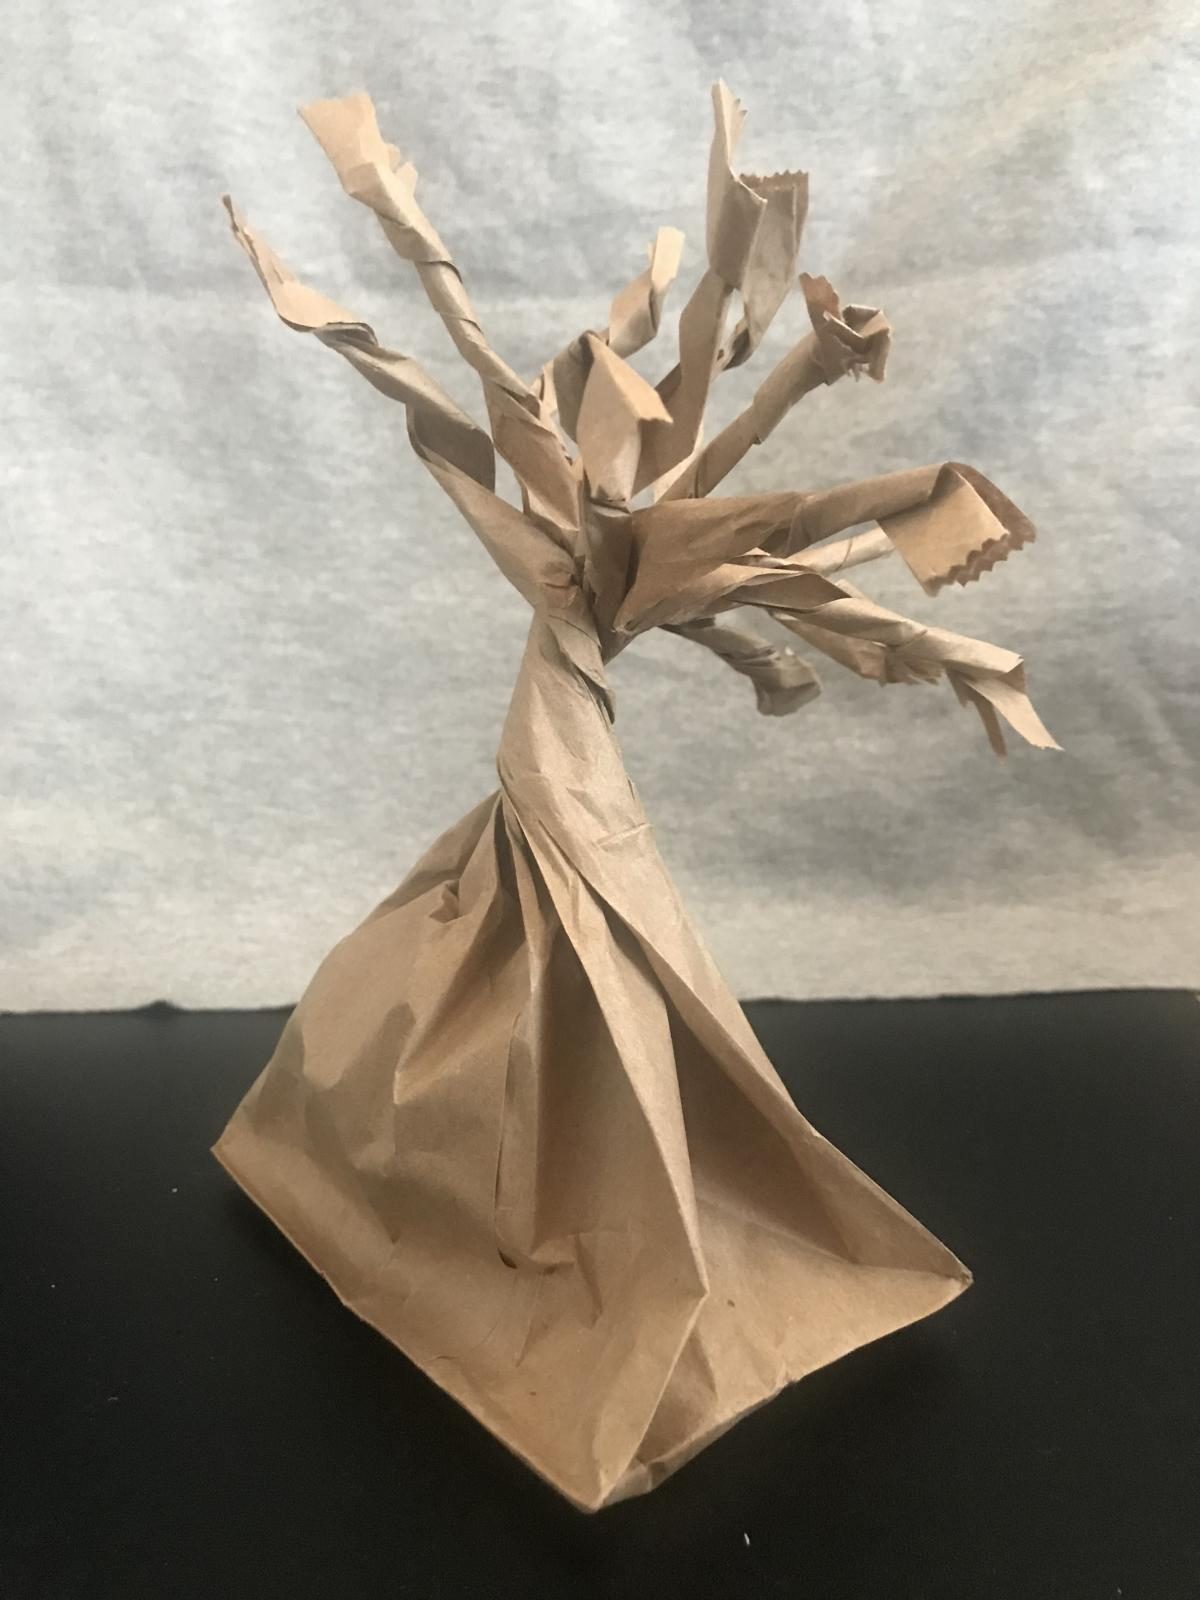 a tree made out of a paper bag